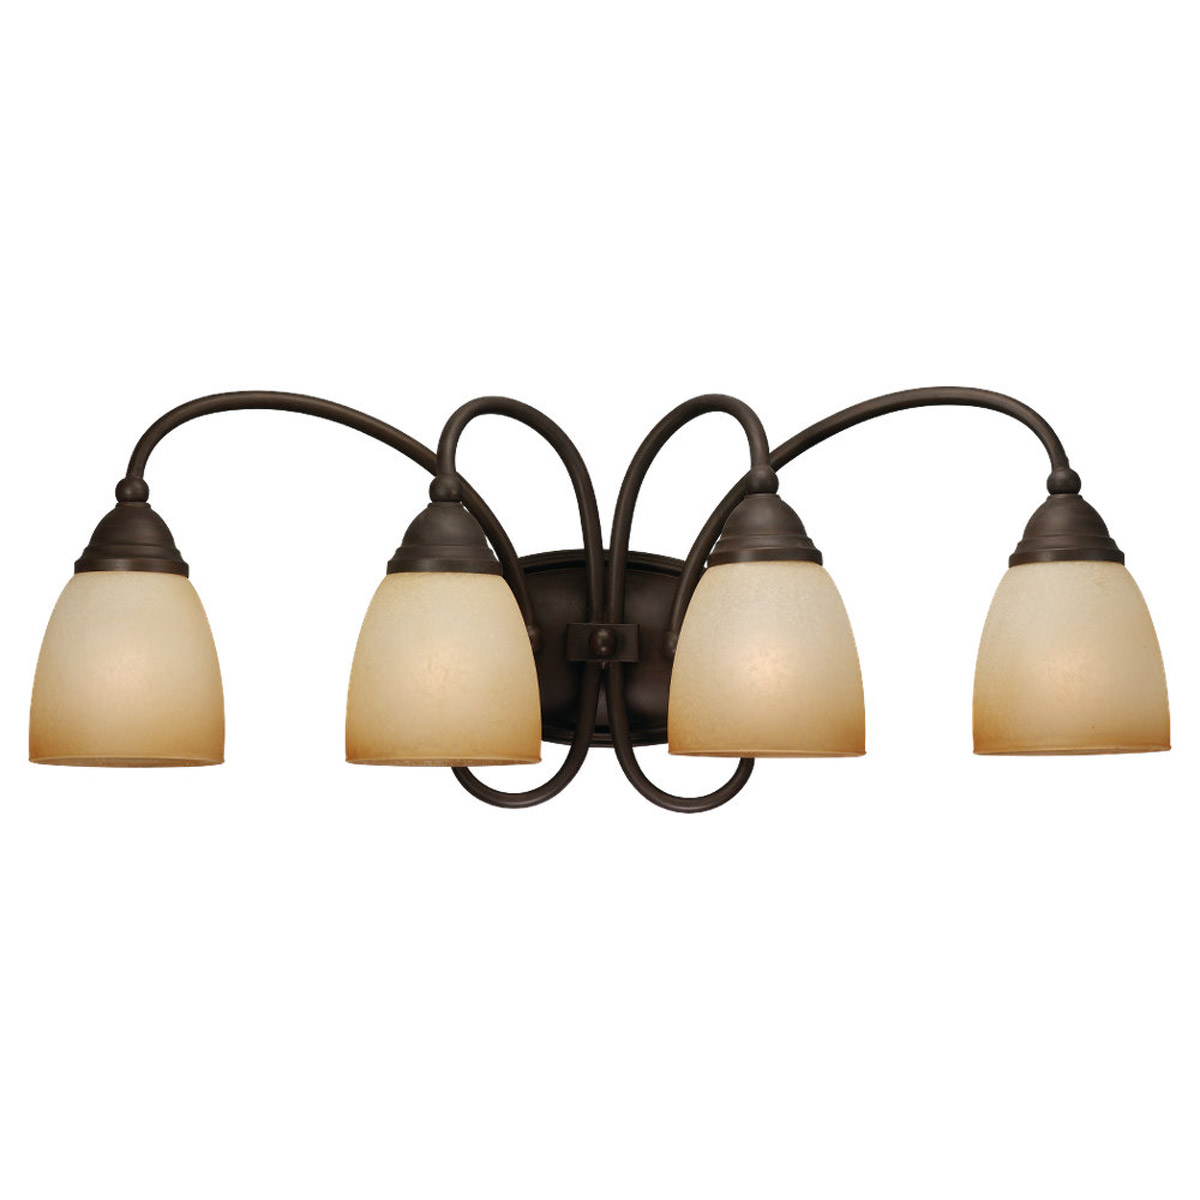 Sea Gull Lighting Montclaire 4 Light Bath Vanity in Olde Iron 44107-72